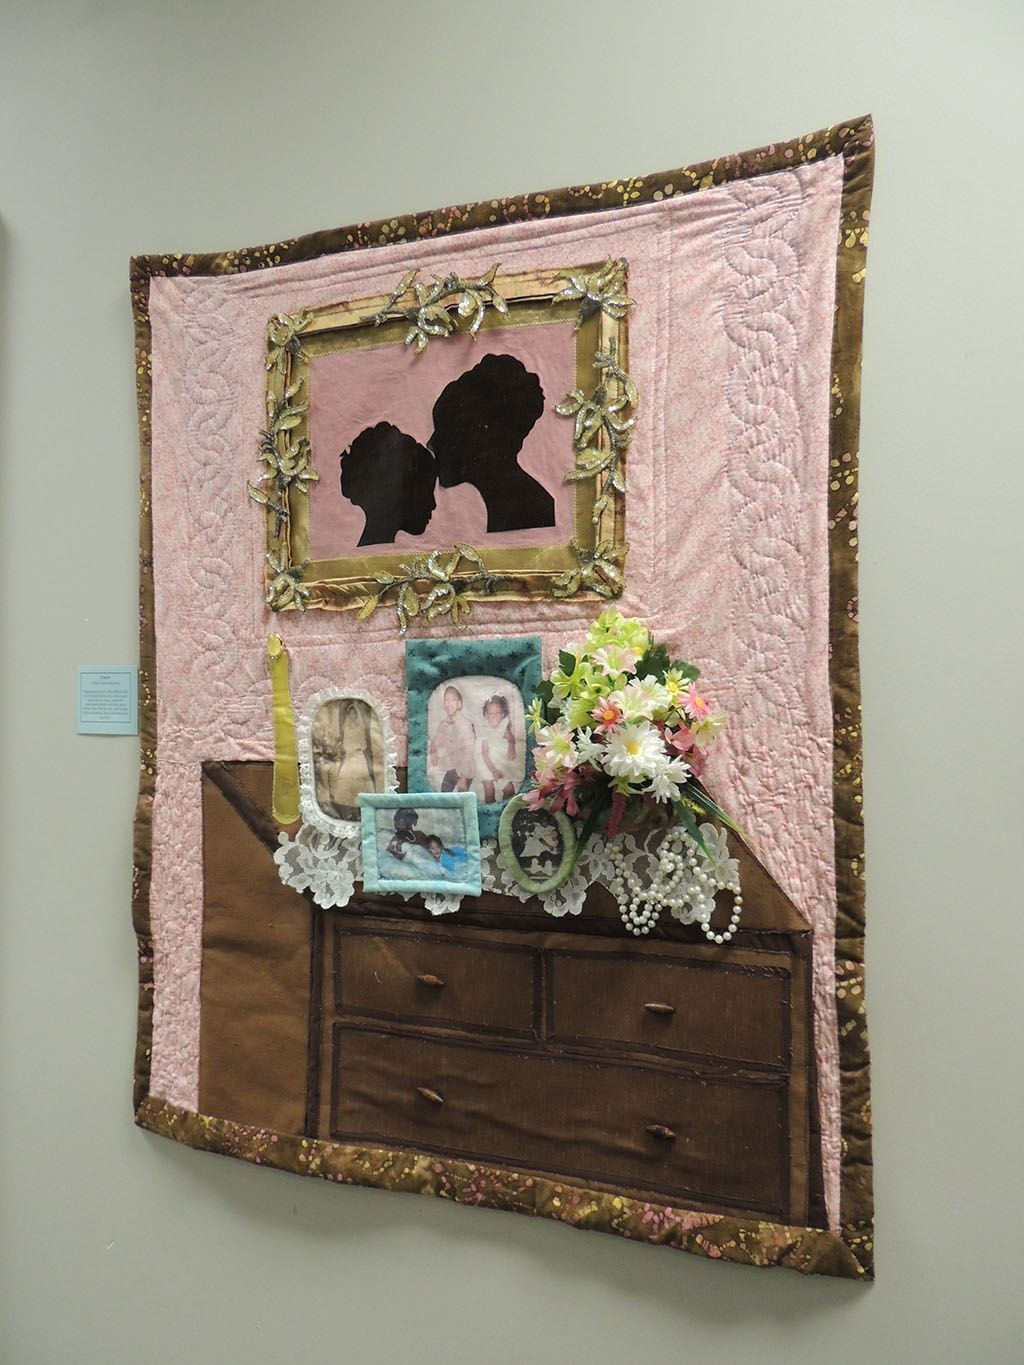 Quilt showing framed images